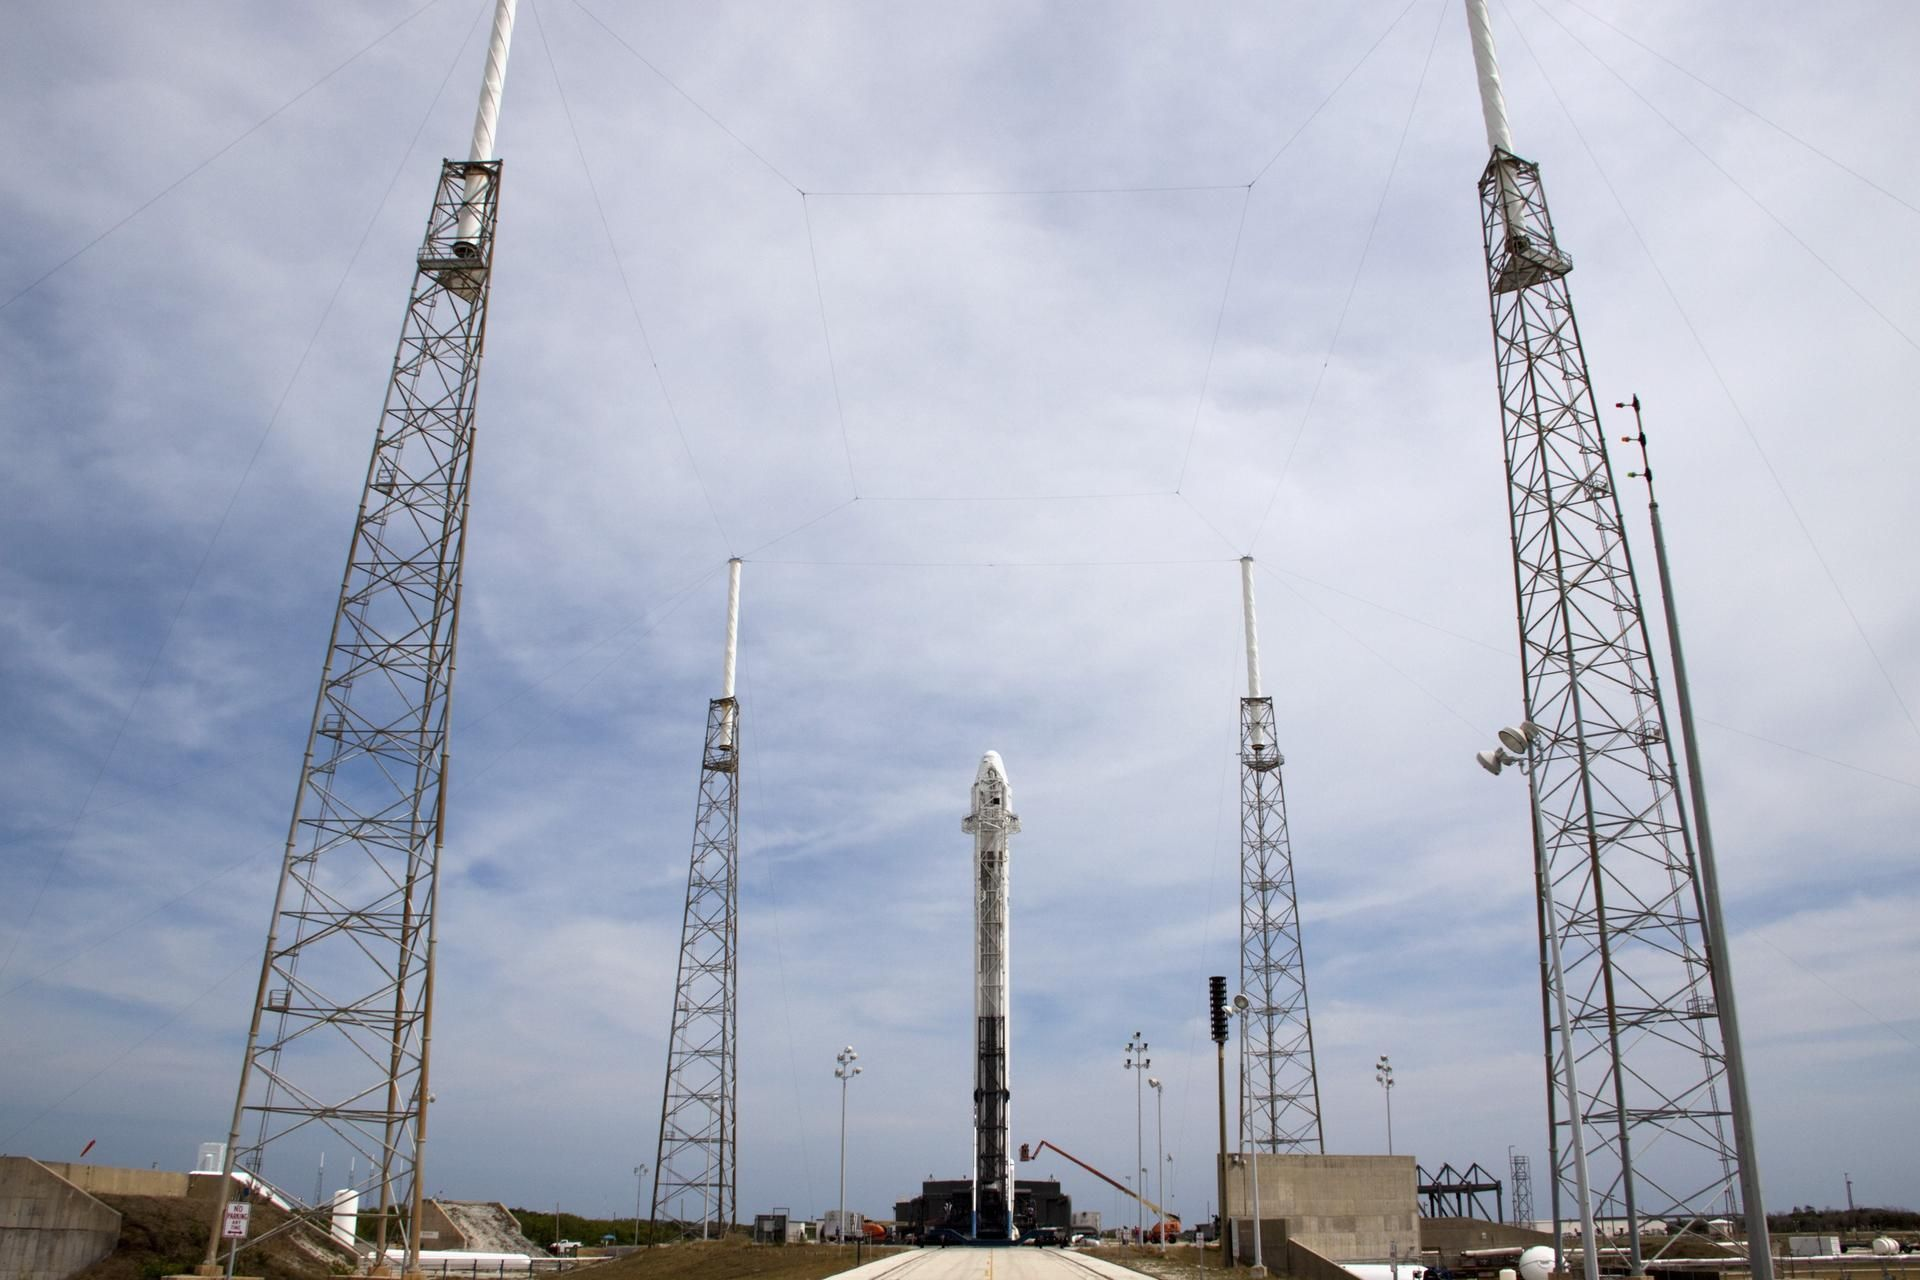 spacex on launch complex 40 2012